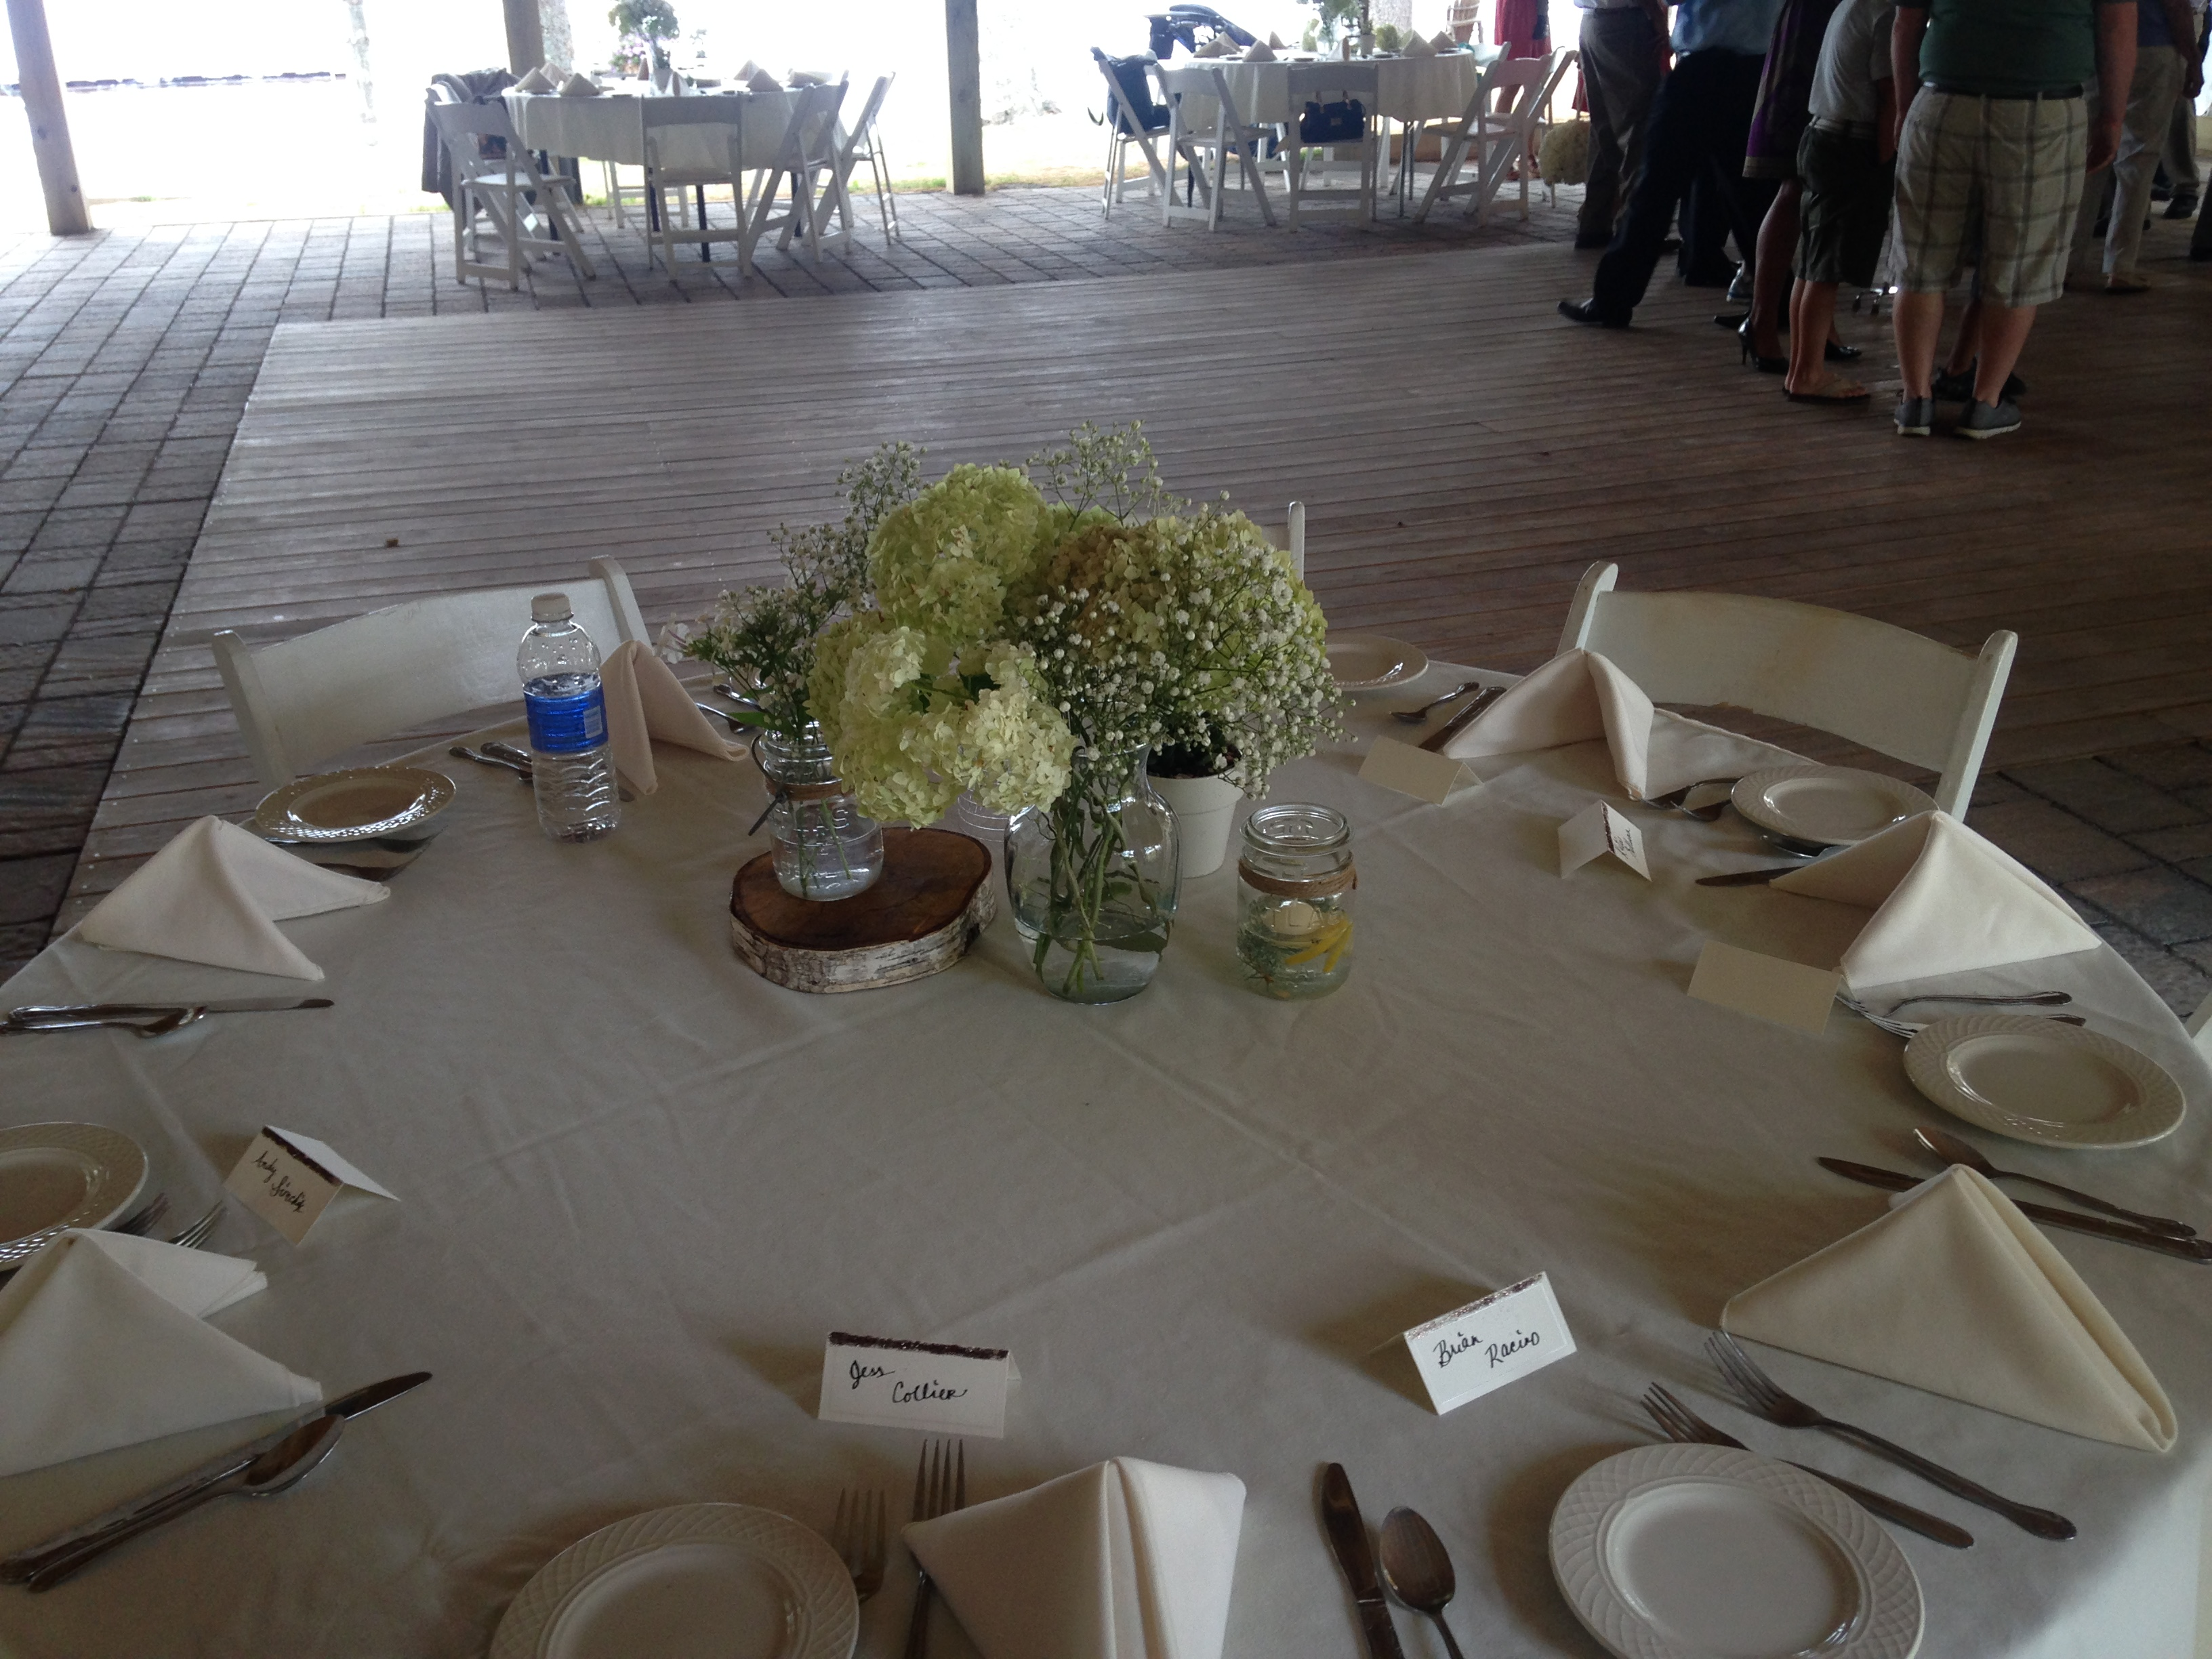 The tables looked great!